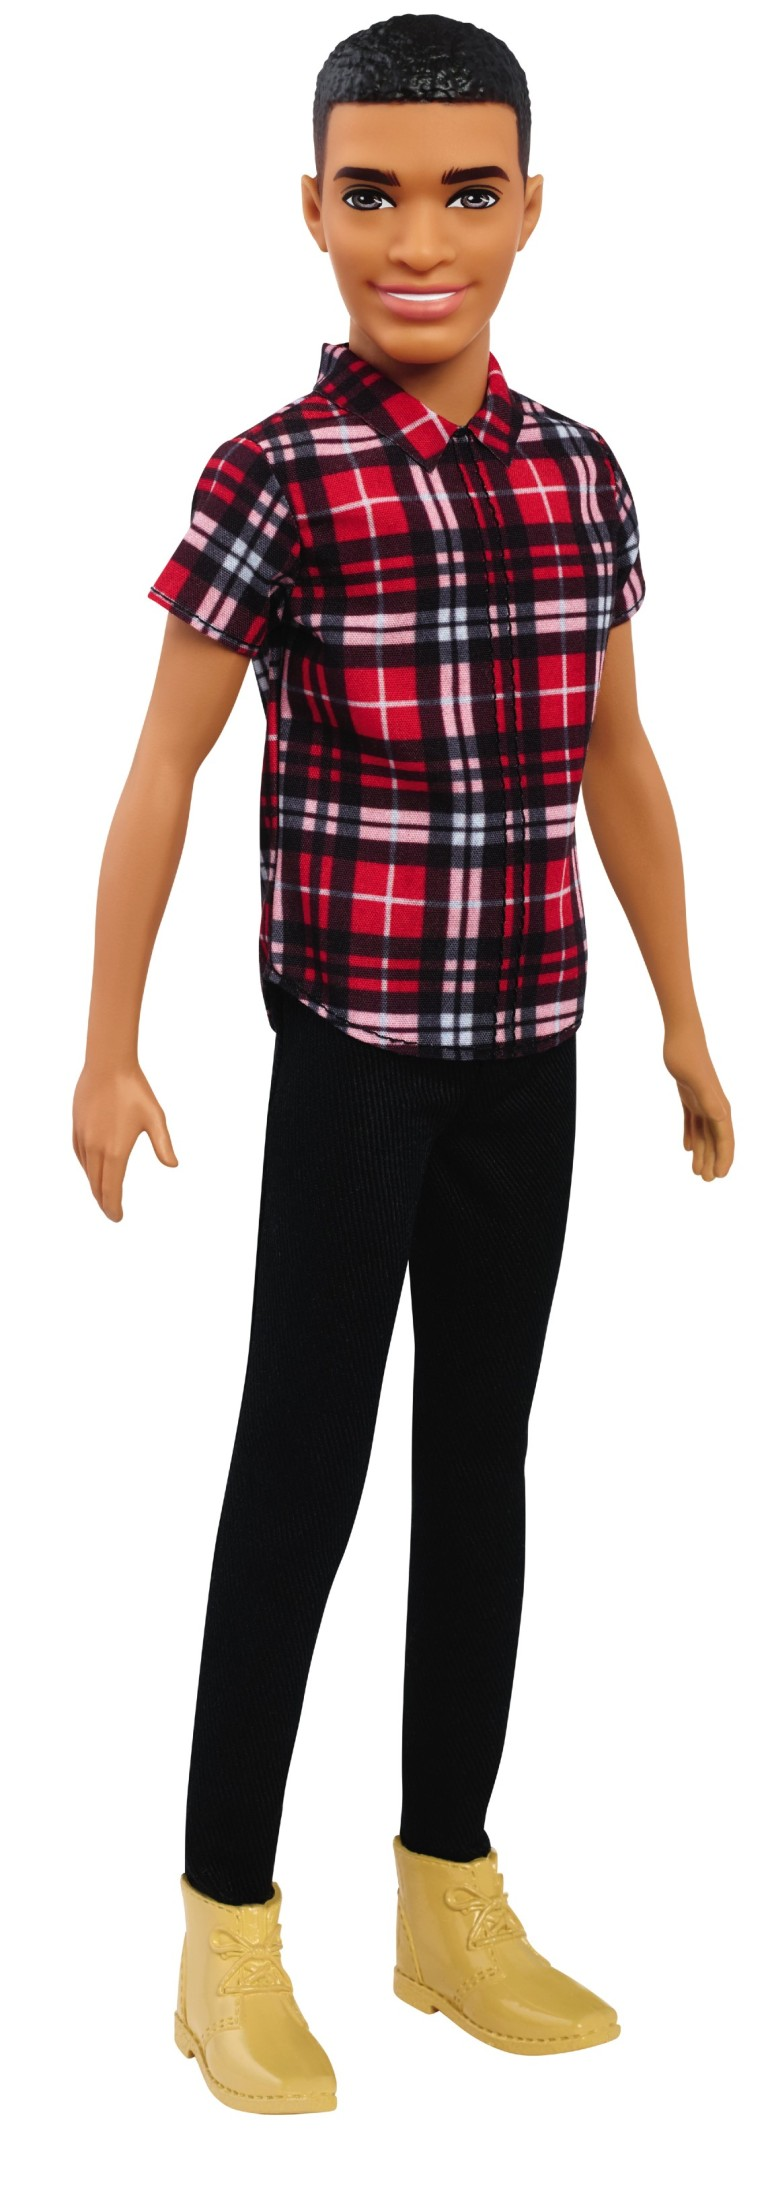 Ken Slim Barbie doll